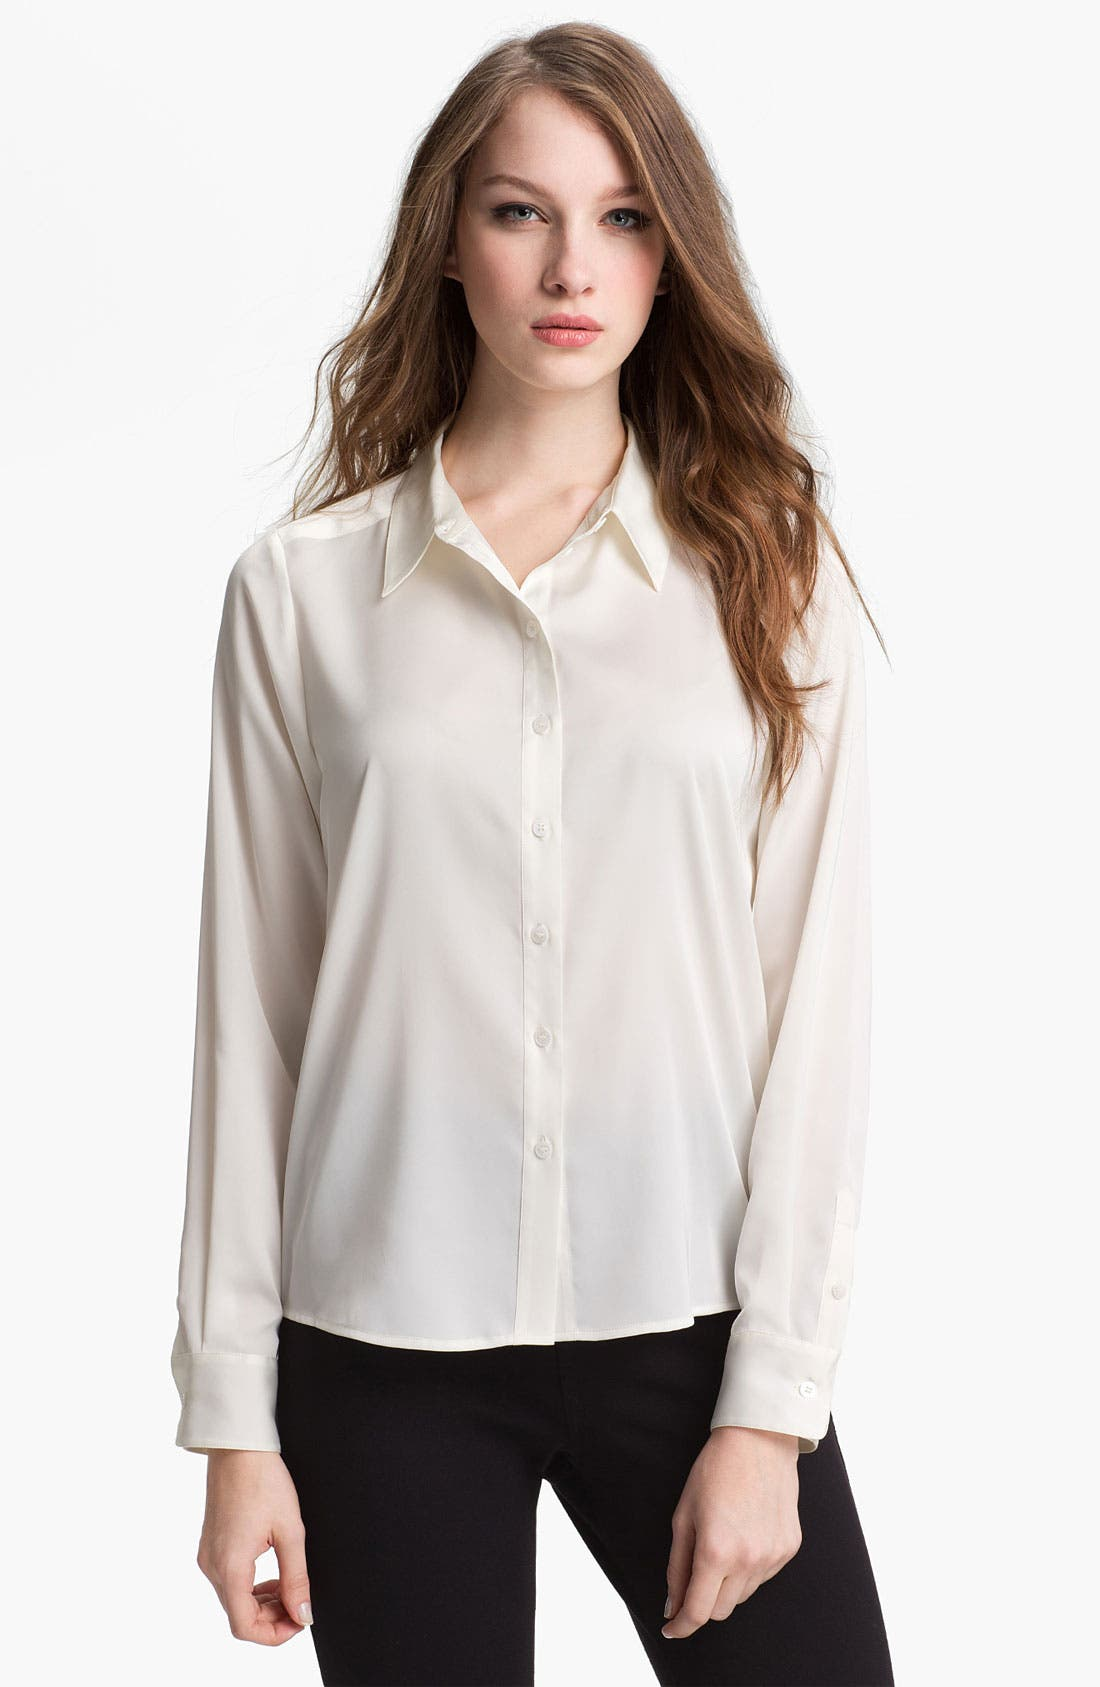 Alternate Image 1 Selected - Vince Camuto 'Essential' Blouse (Petite)